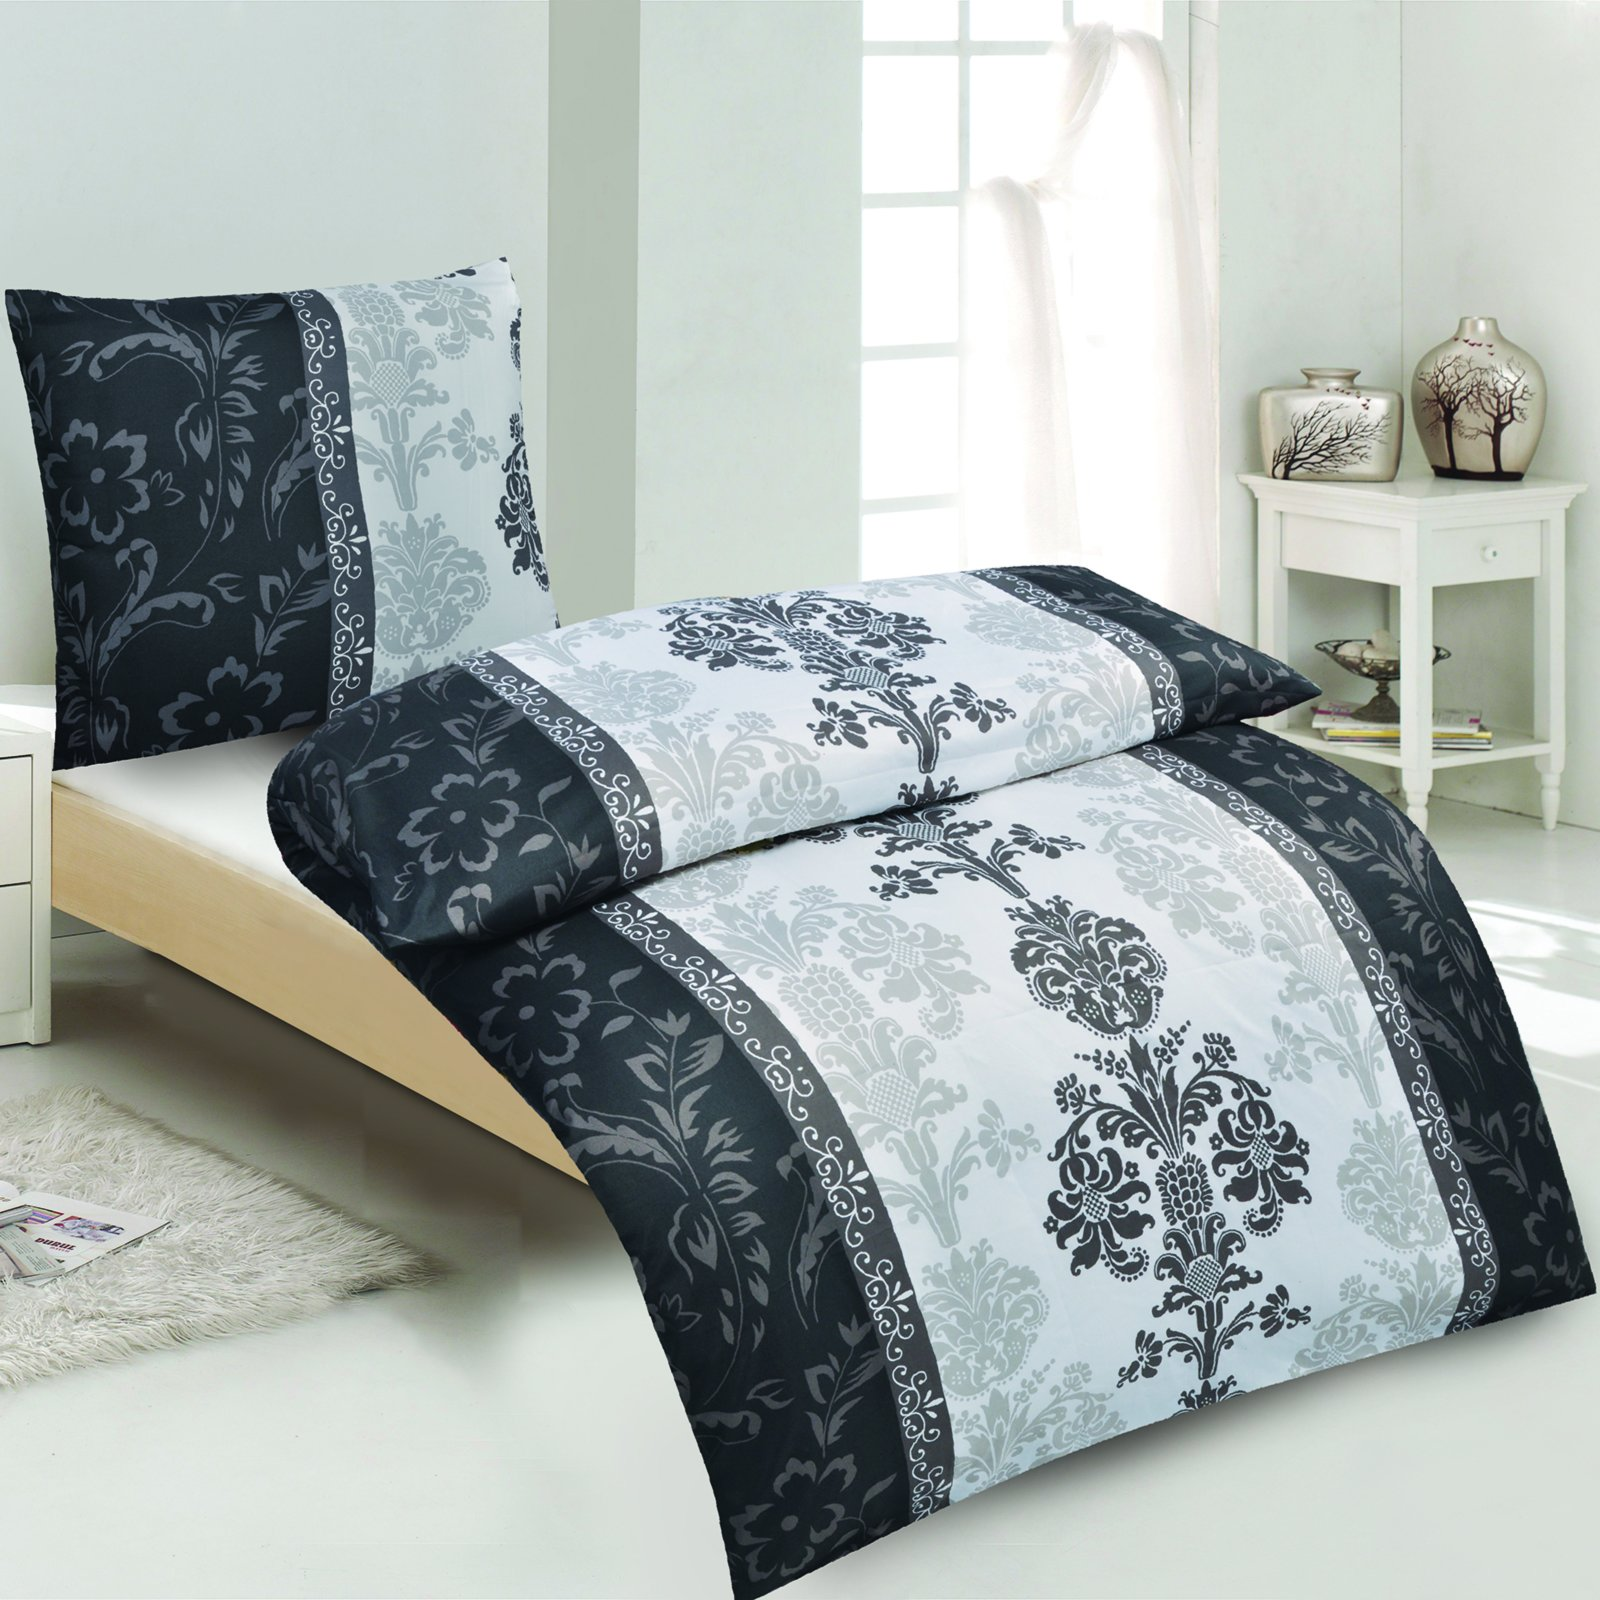 roller bettw sche sophie sw schwarz wei 155x220 cm ebay. Black Bedroom Furniture Sets. Home Design Ideas